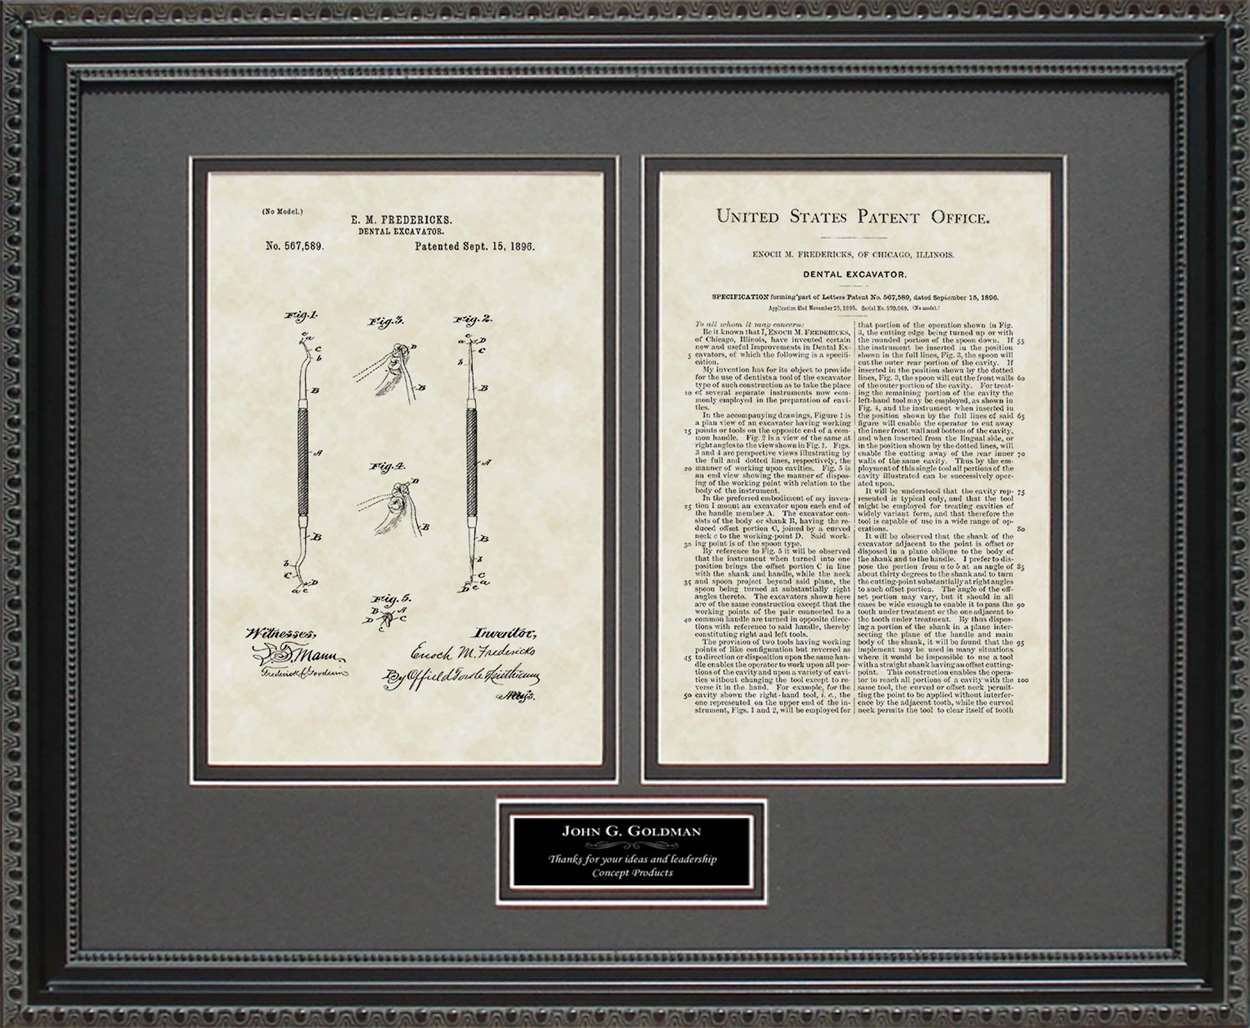 Personalized Dental Currette Patent, Art & Copy, Fredericks, 1896 16 X 20